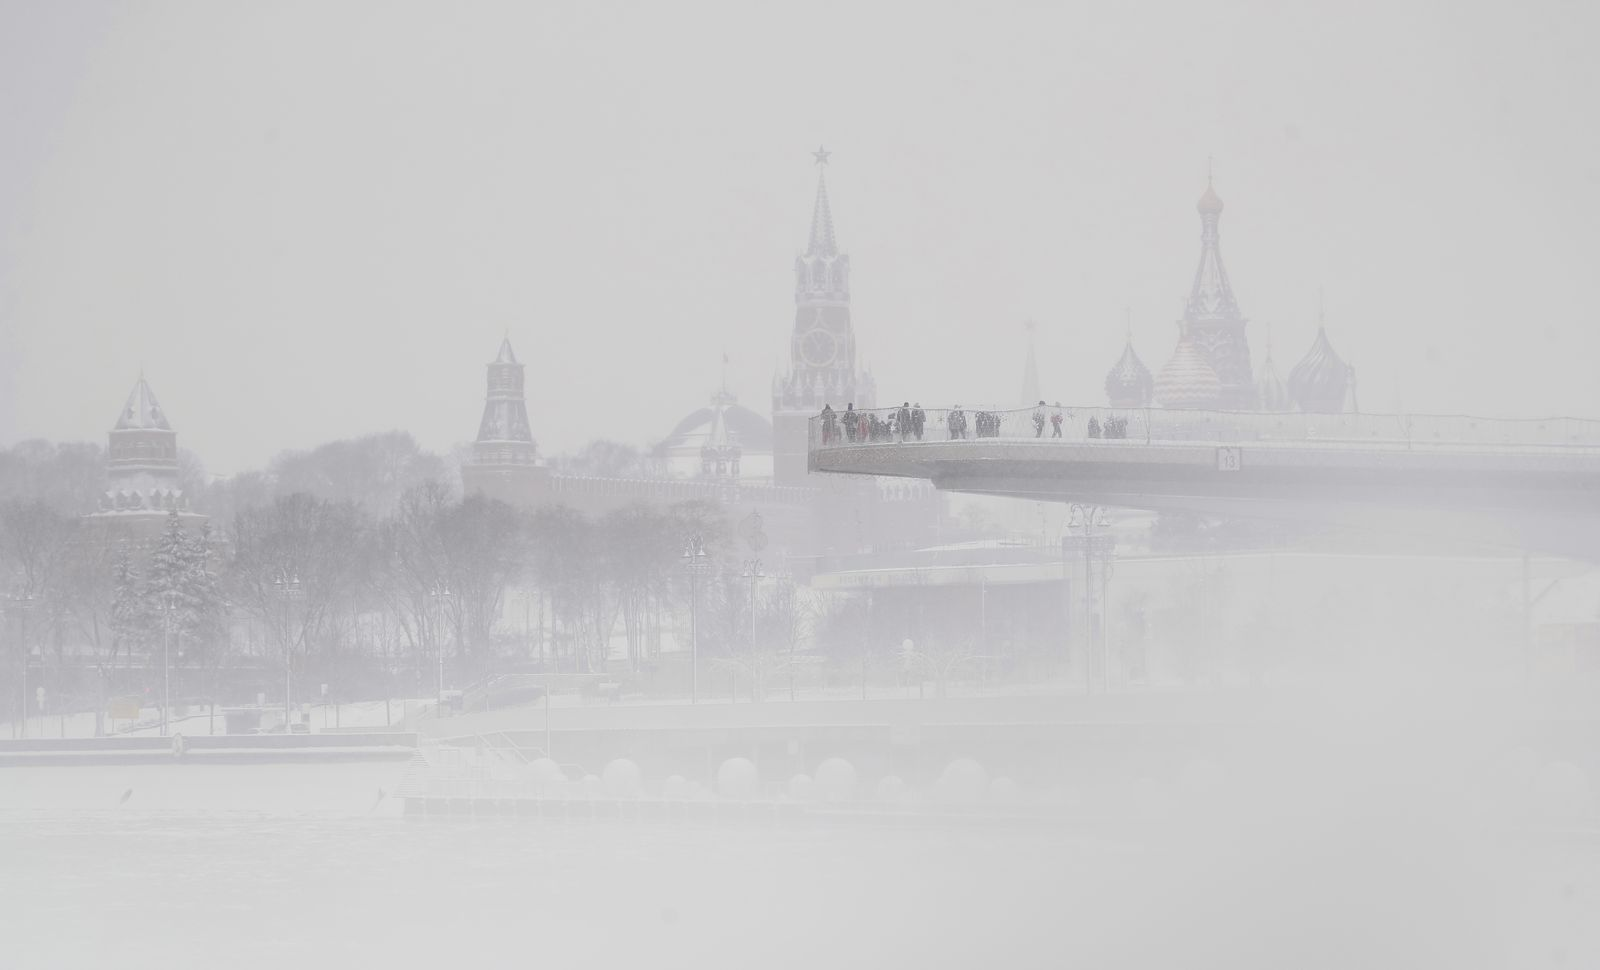 Snowfall in Moscow, Russian Federation - 02 Jan 2021